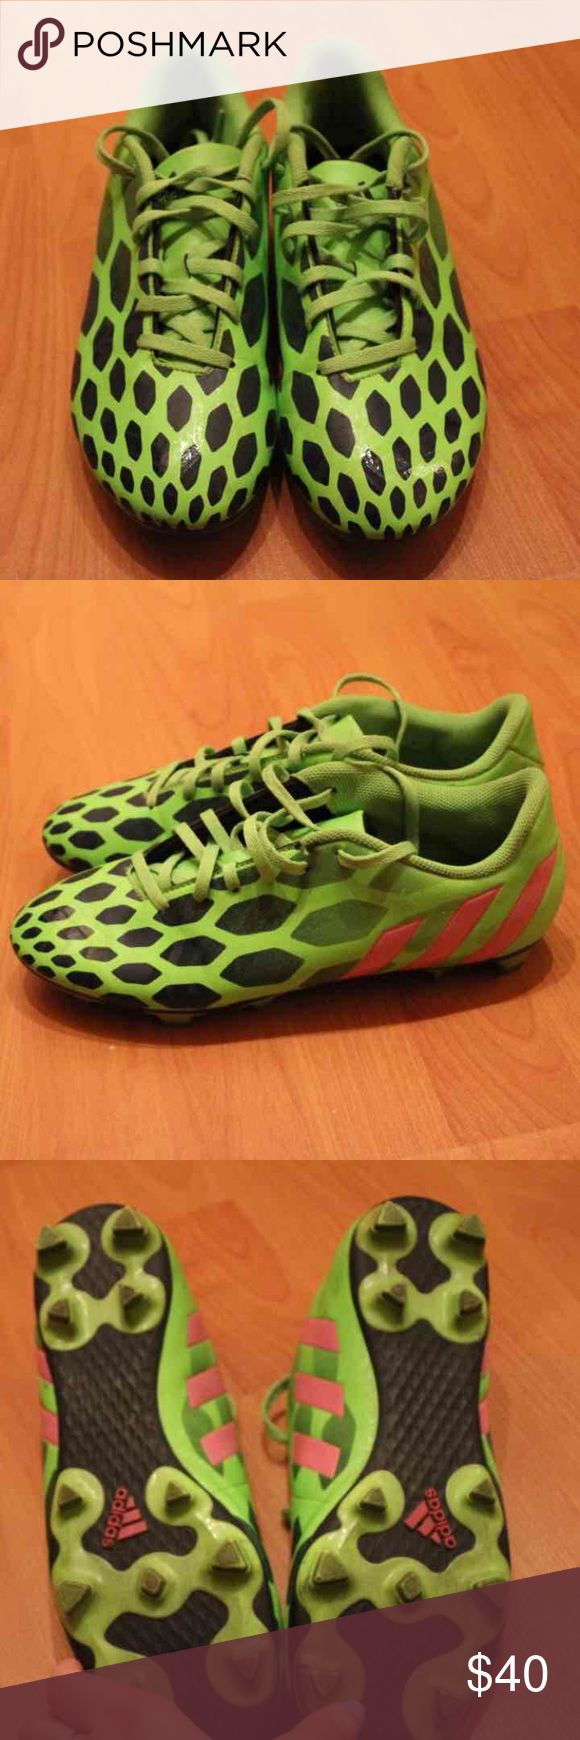 Adidas Women Predator soccer cleats Have been worn less than ten times. Obvious wear, otherwise there is nothing wrong with them. I have no use for them since I finished soccer.  Women's size 10 Adidas Shoes Athletic Shoes